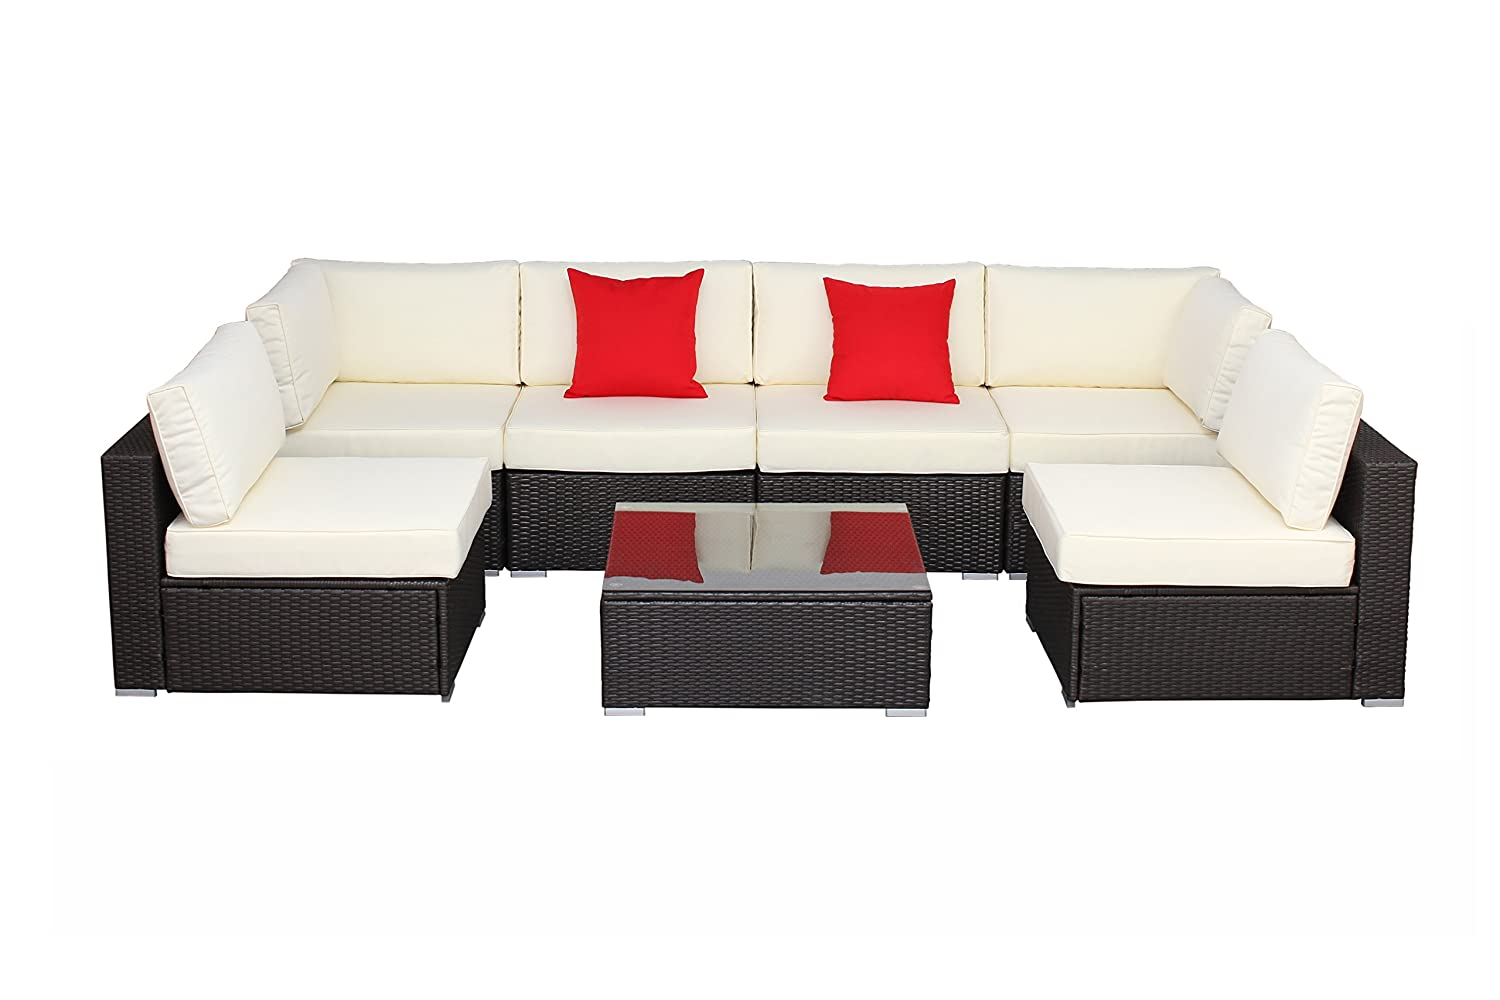 Amazon.com: Do4U 7 Piece Outdoor Patio PE Rattan Wicker Sofa ...